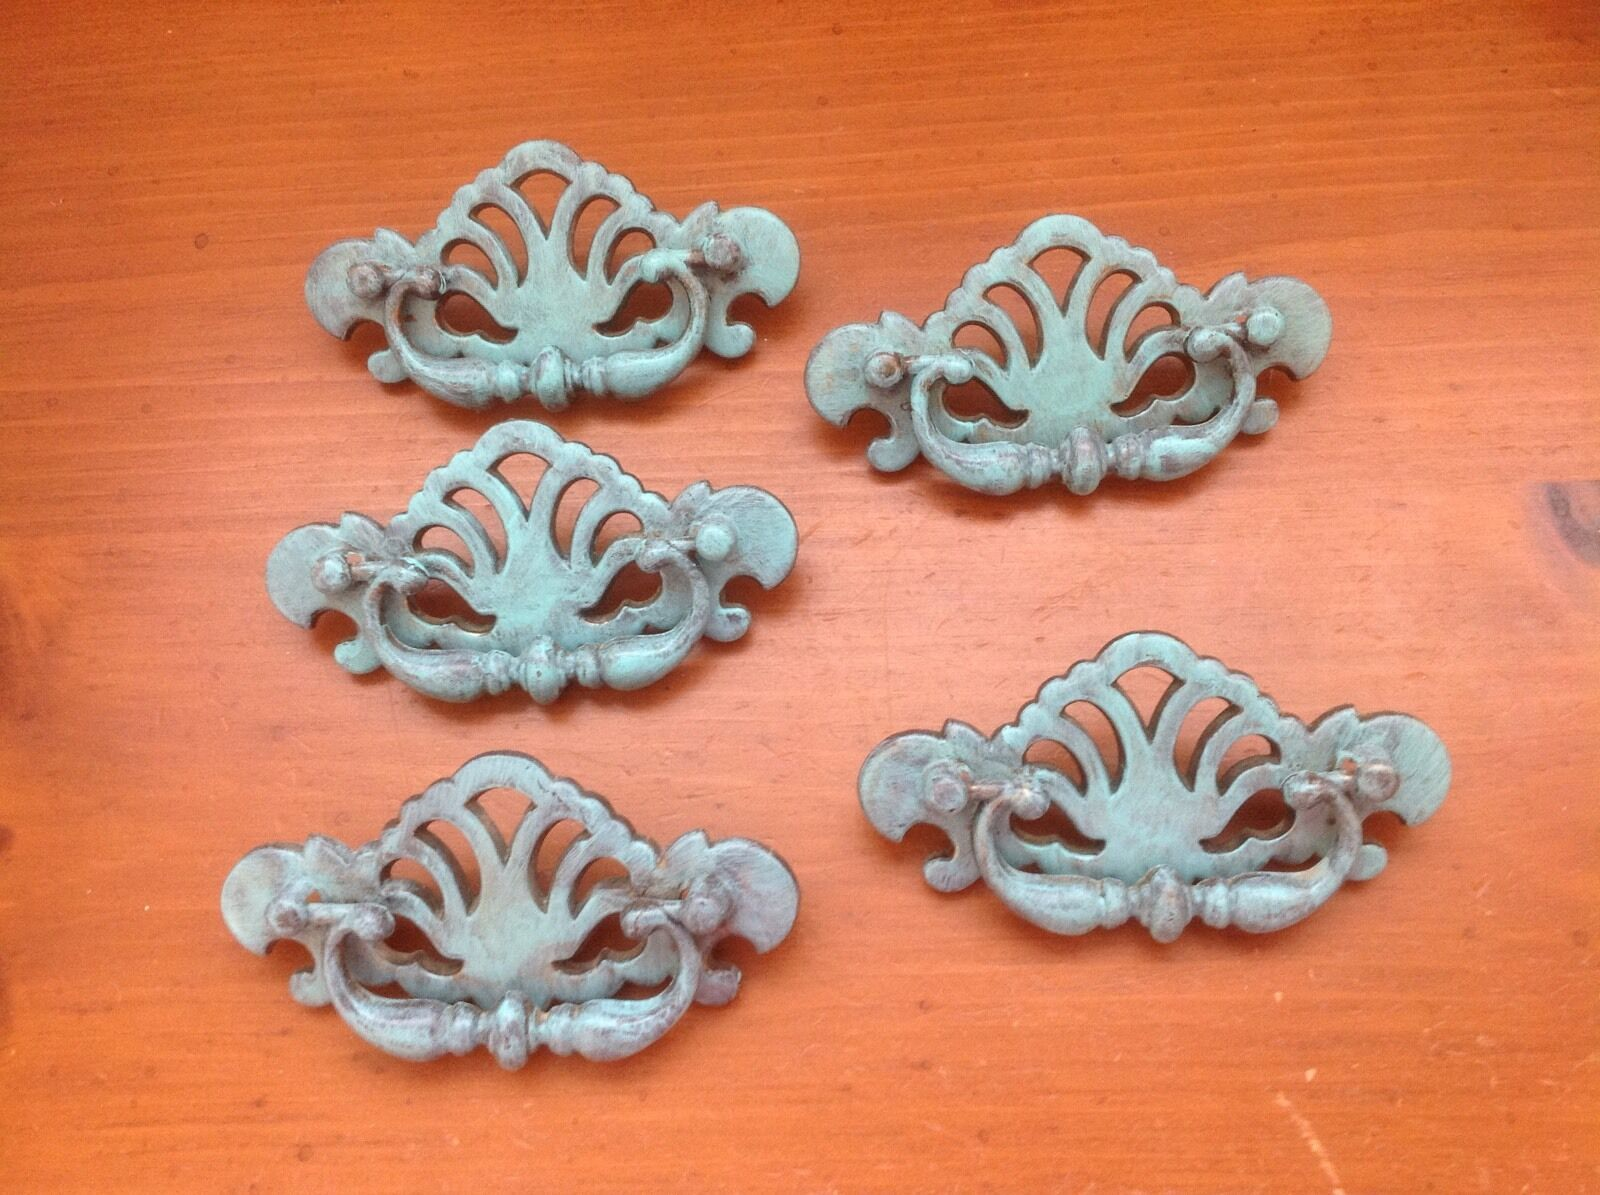 550 VTG French Provincial Swing Pulls In Turquoise Distressed 5 Available,each